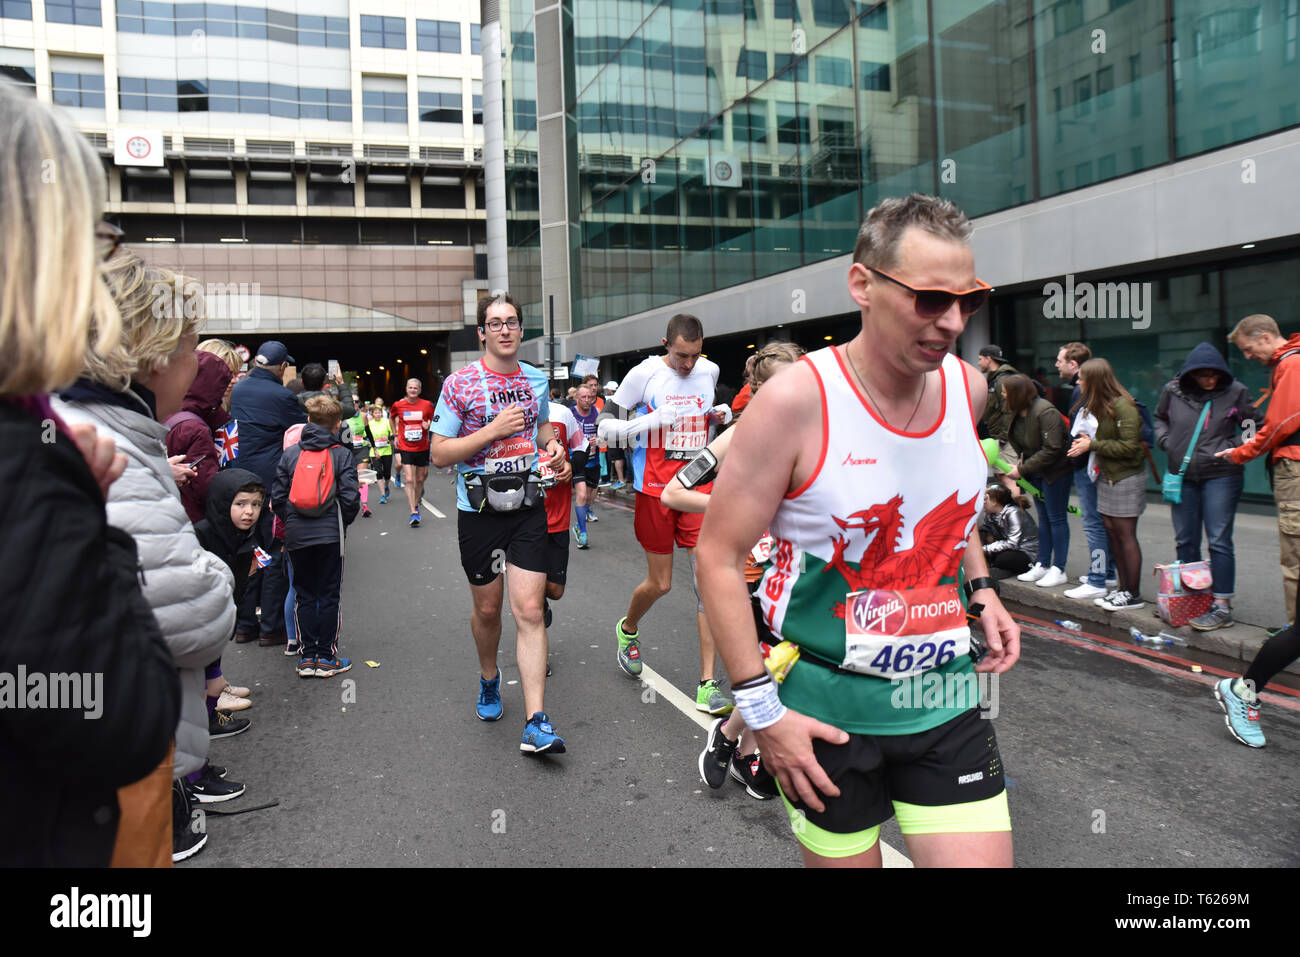 London, UK. 28th April 2019. The annual Virgin Money London Marathon passes from Greenwich to finish on the Mall. Credit: Matthew Chattle/Alamy Live News Stock Photo